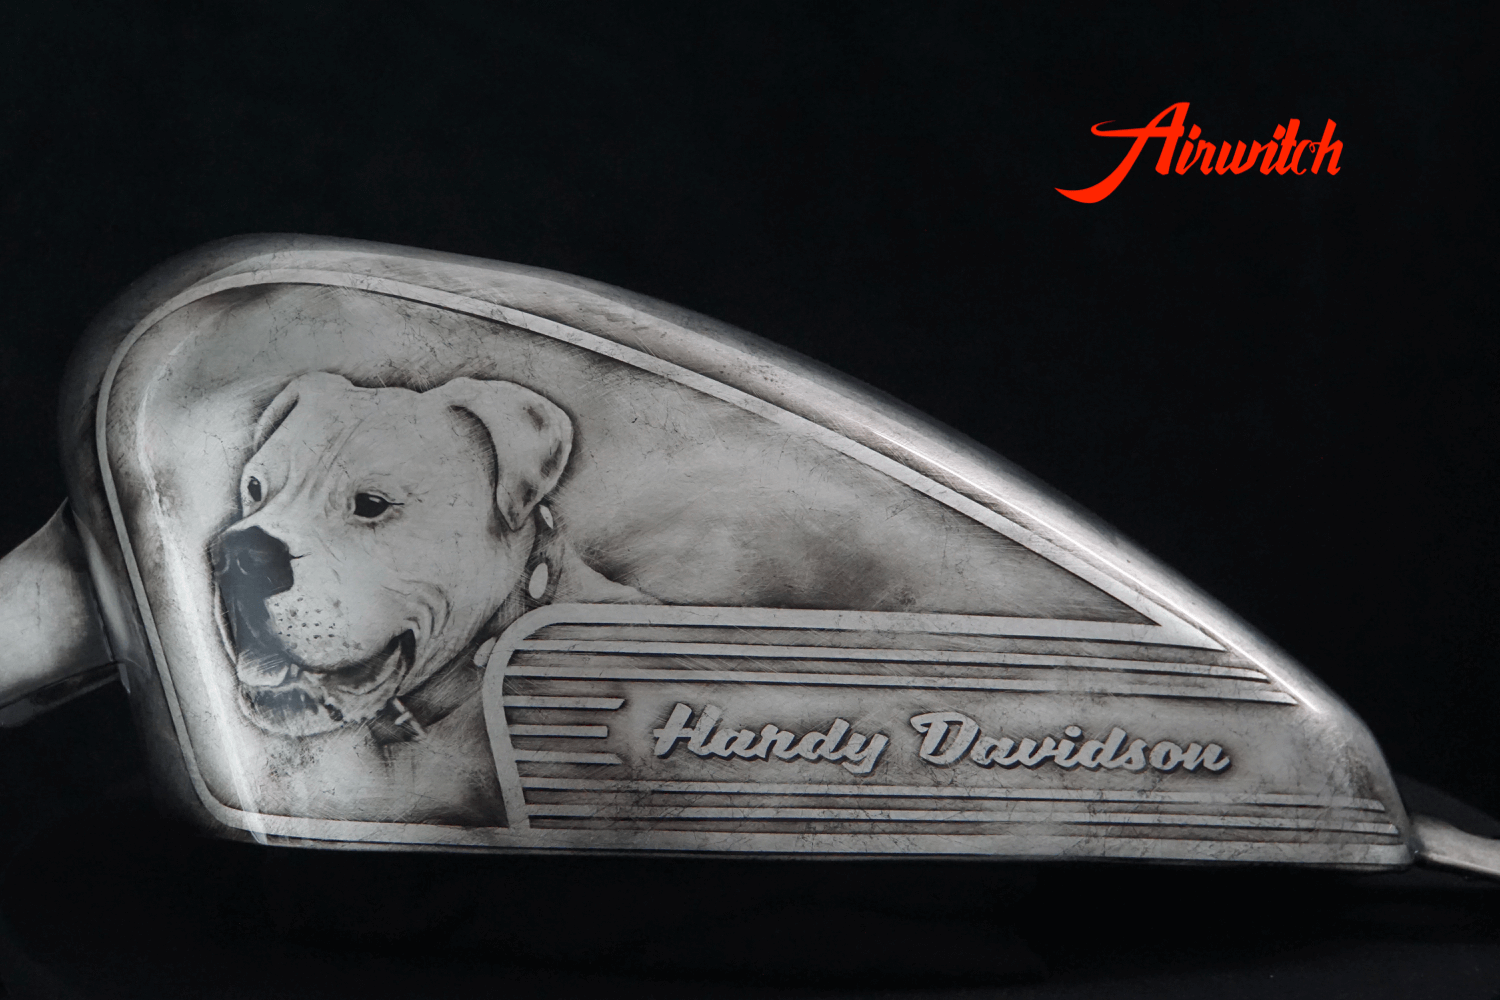 Custom Paint Harley Davidson Sportster 48 Tank Bobber mit Blattsilber - old silver with ancient look